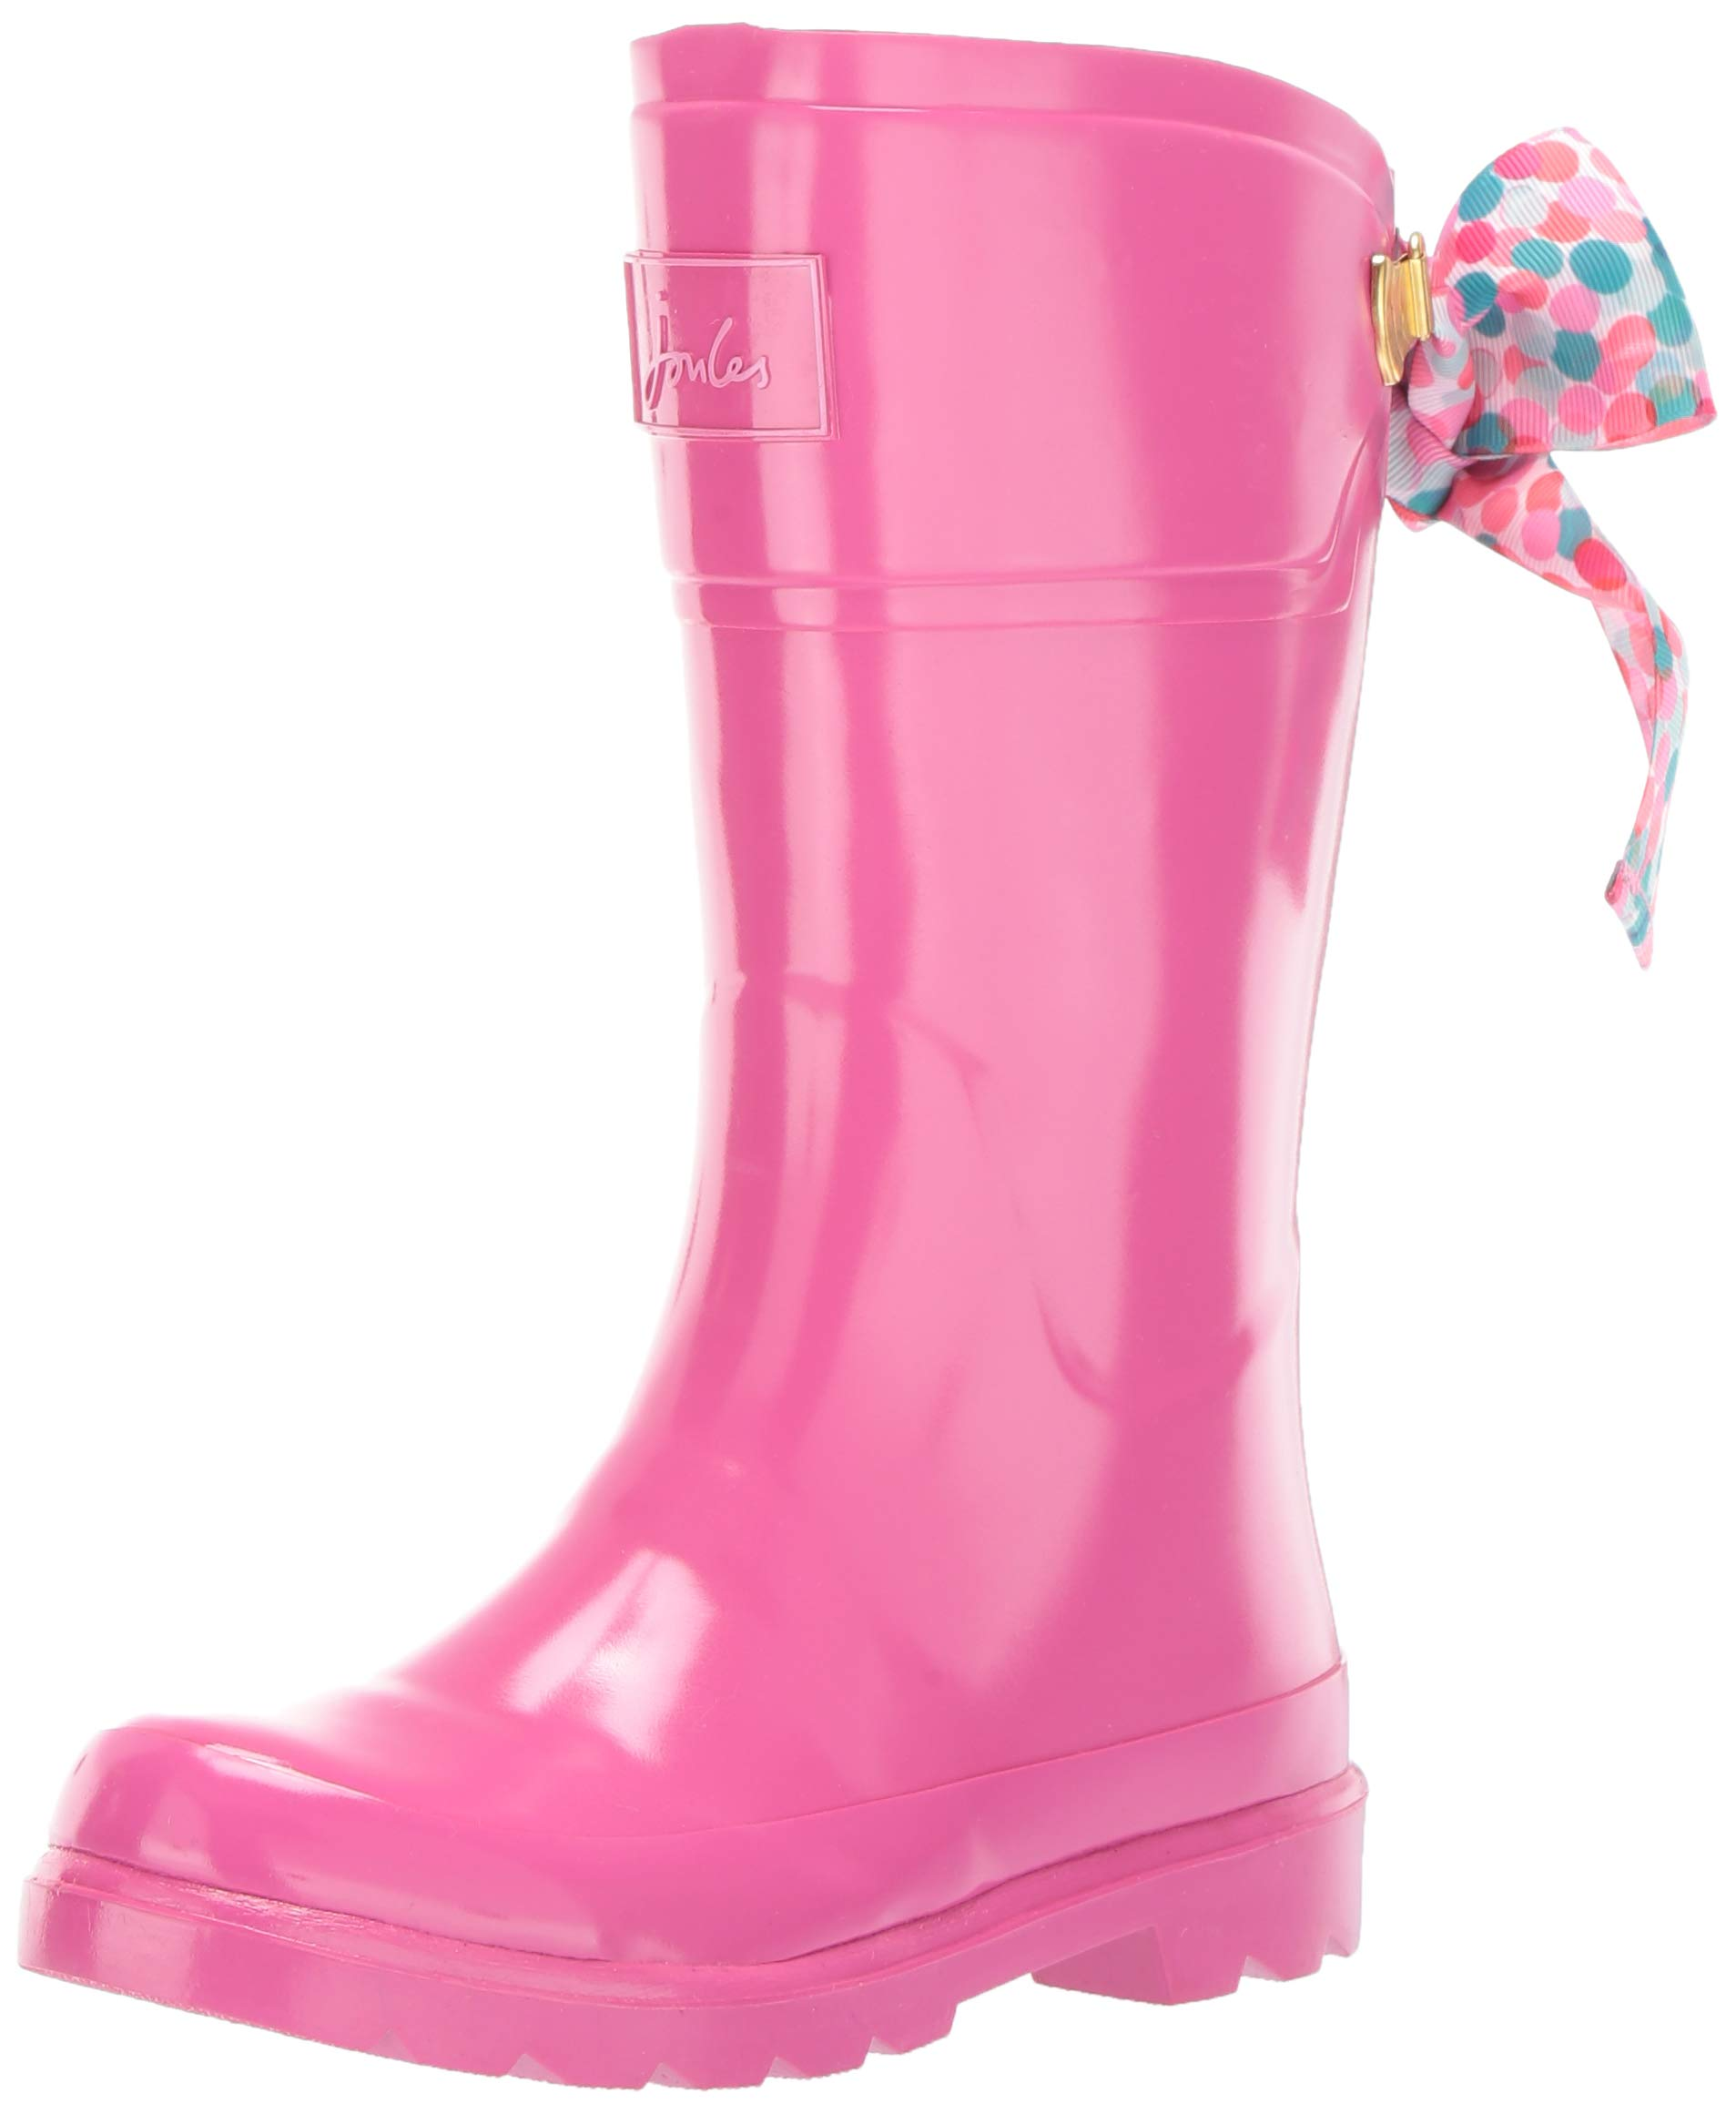 Joules Girls' JNR Bow Welly Rain Boot, True Pink, 10 M US Little Kid